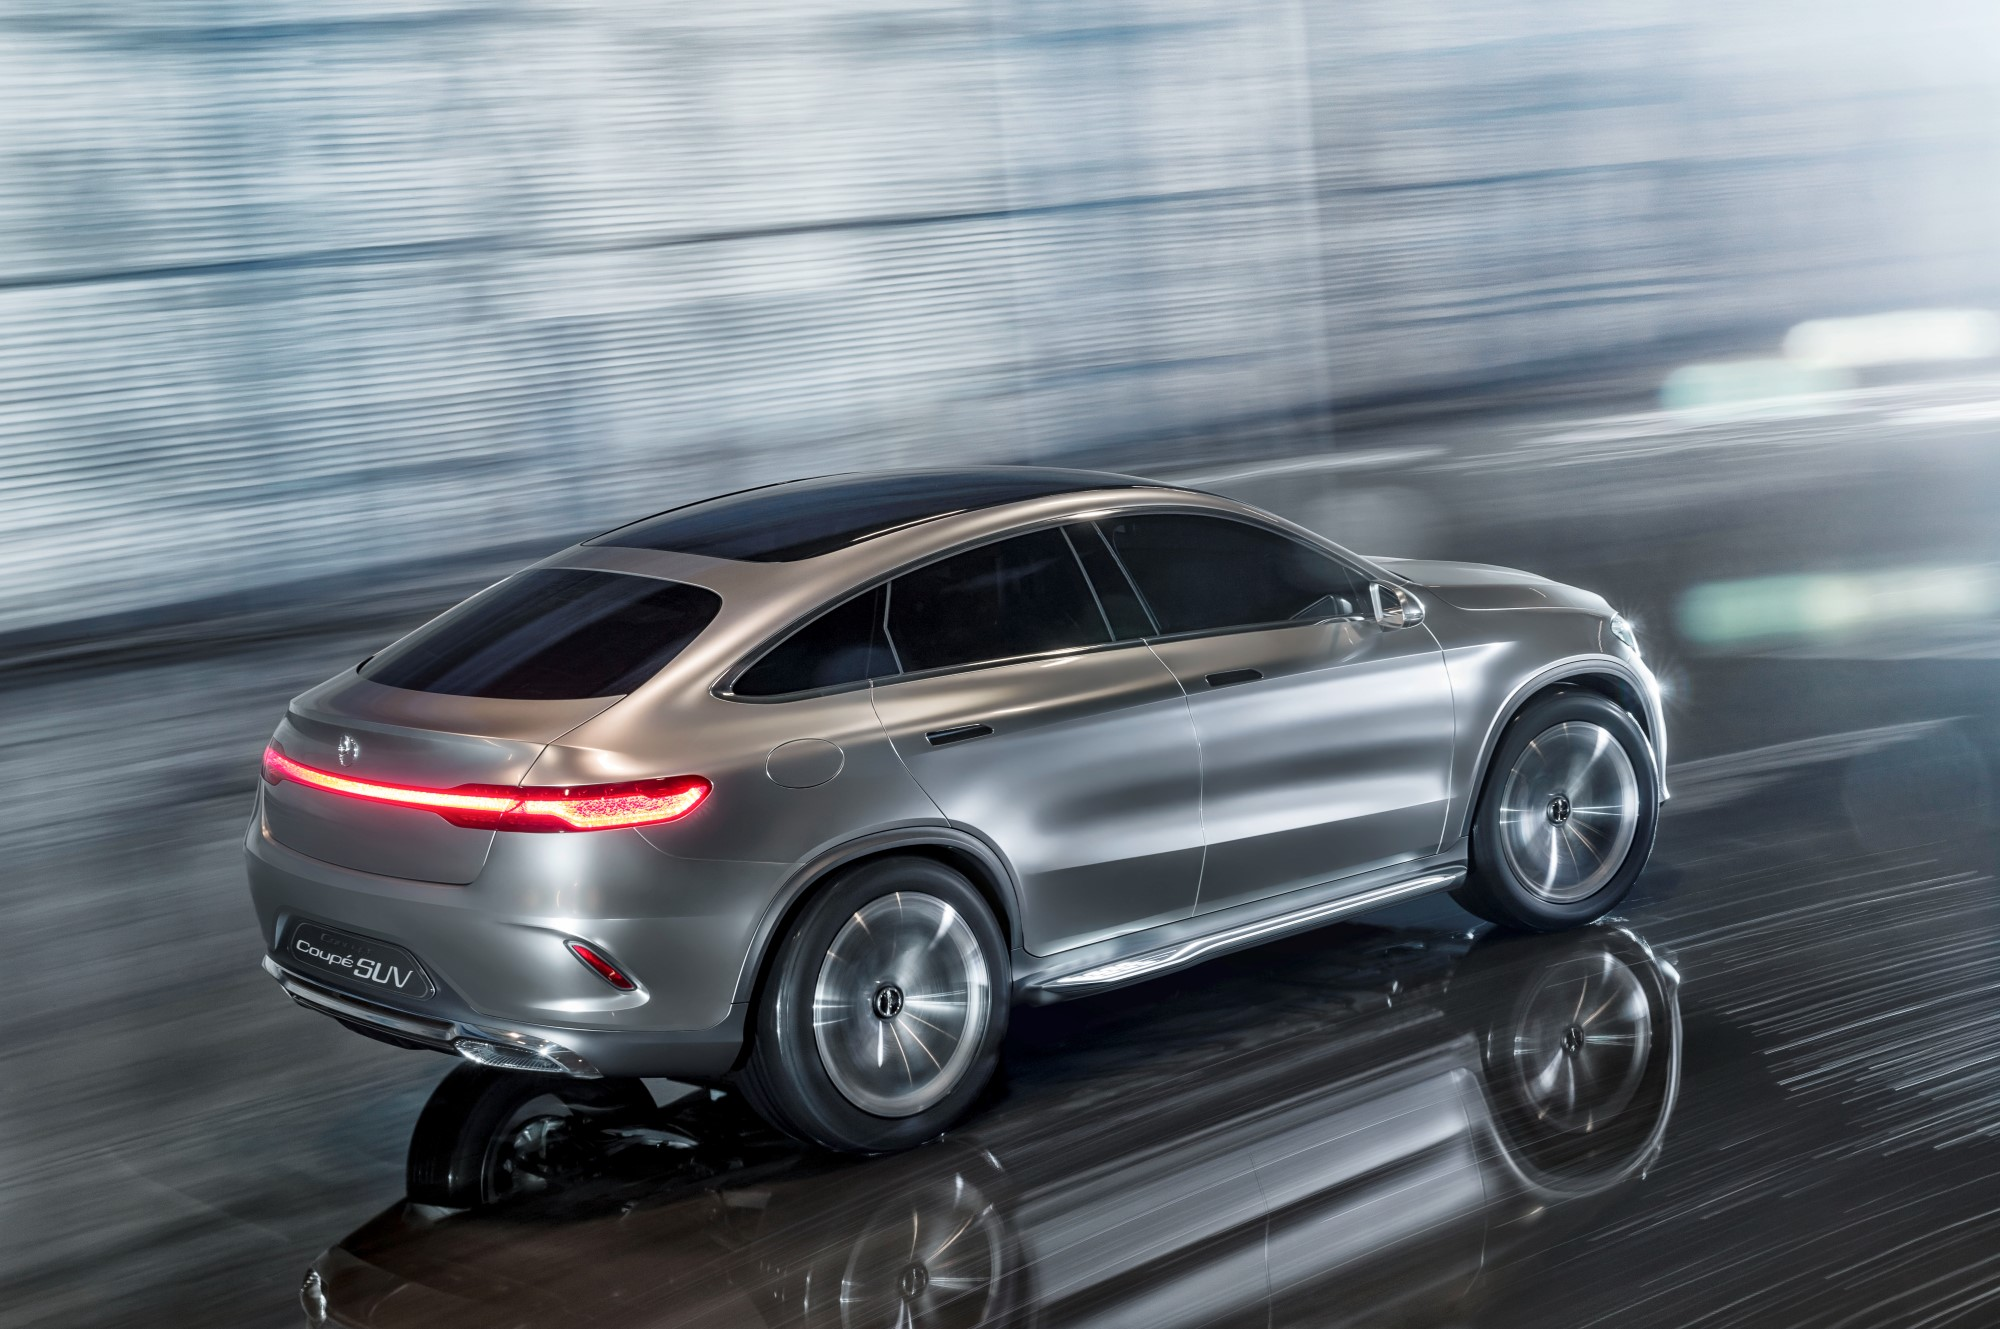 Mercedes Gla Based Coupe Crossover Possible Says R D Chief